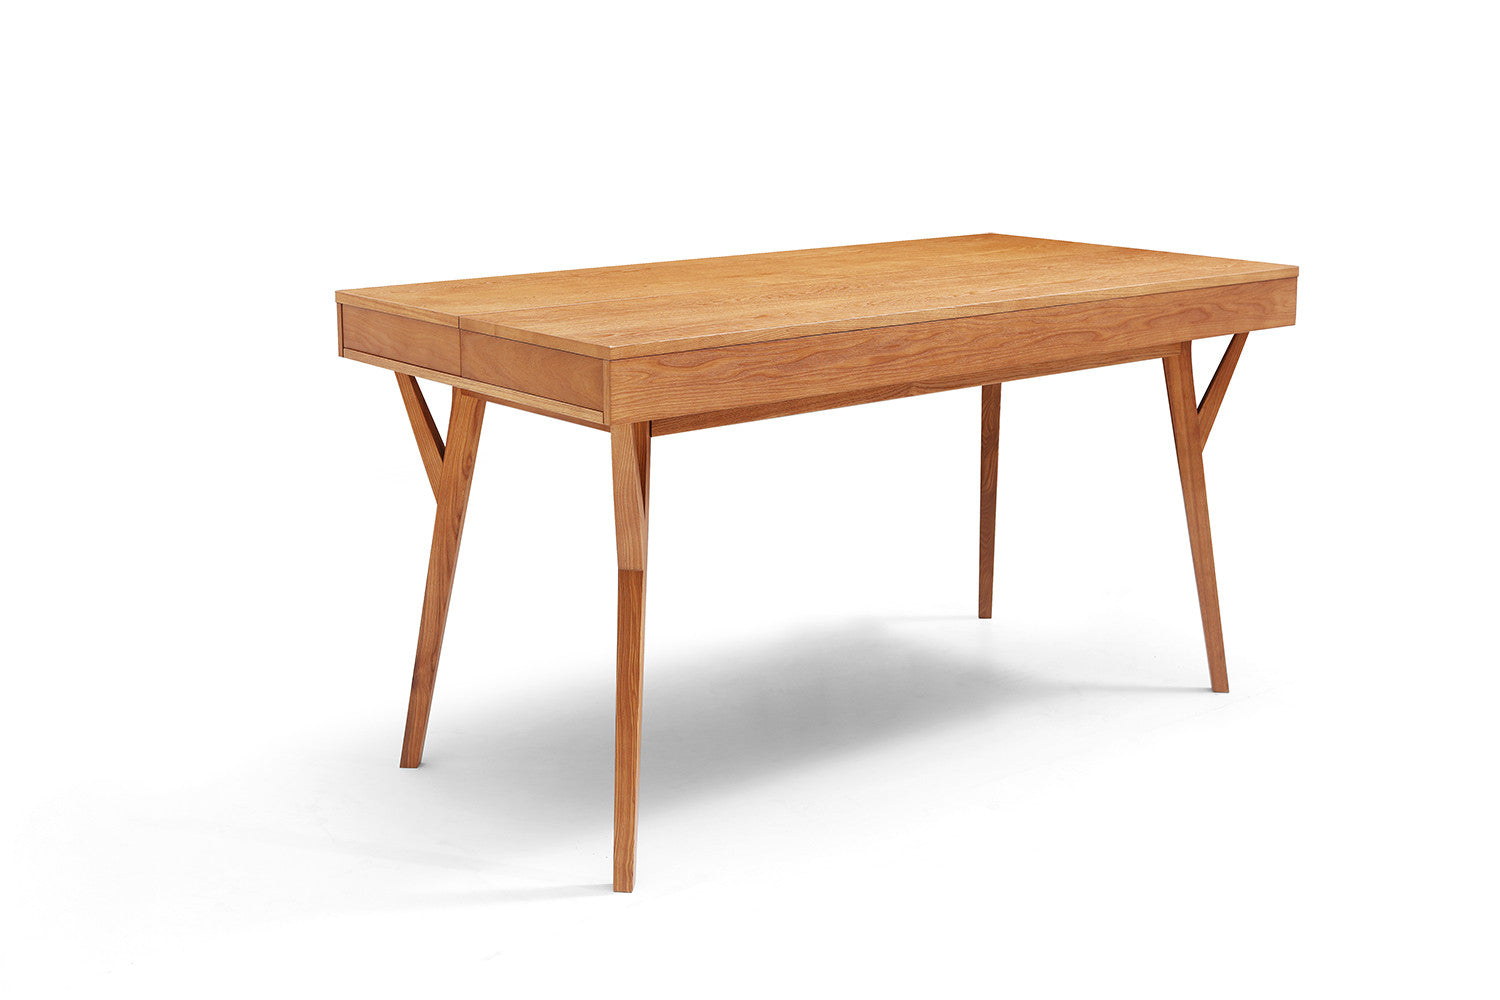 Bureau design scandinave en bois et convertible emme for Table bureau